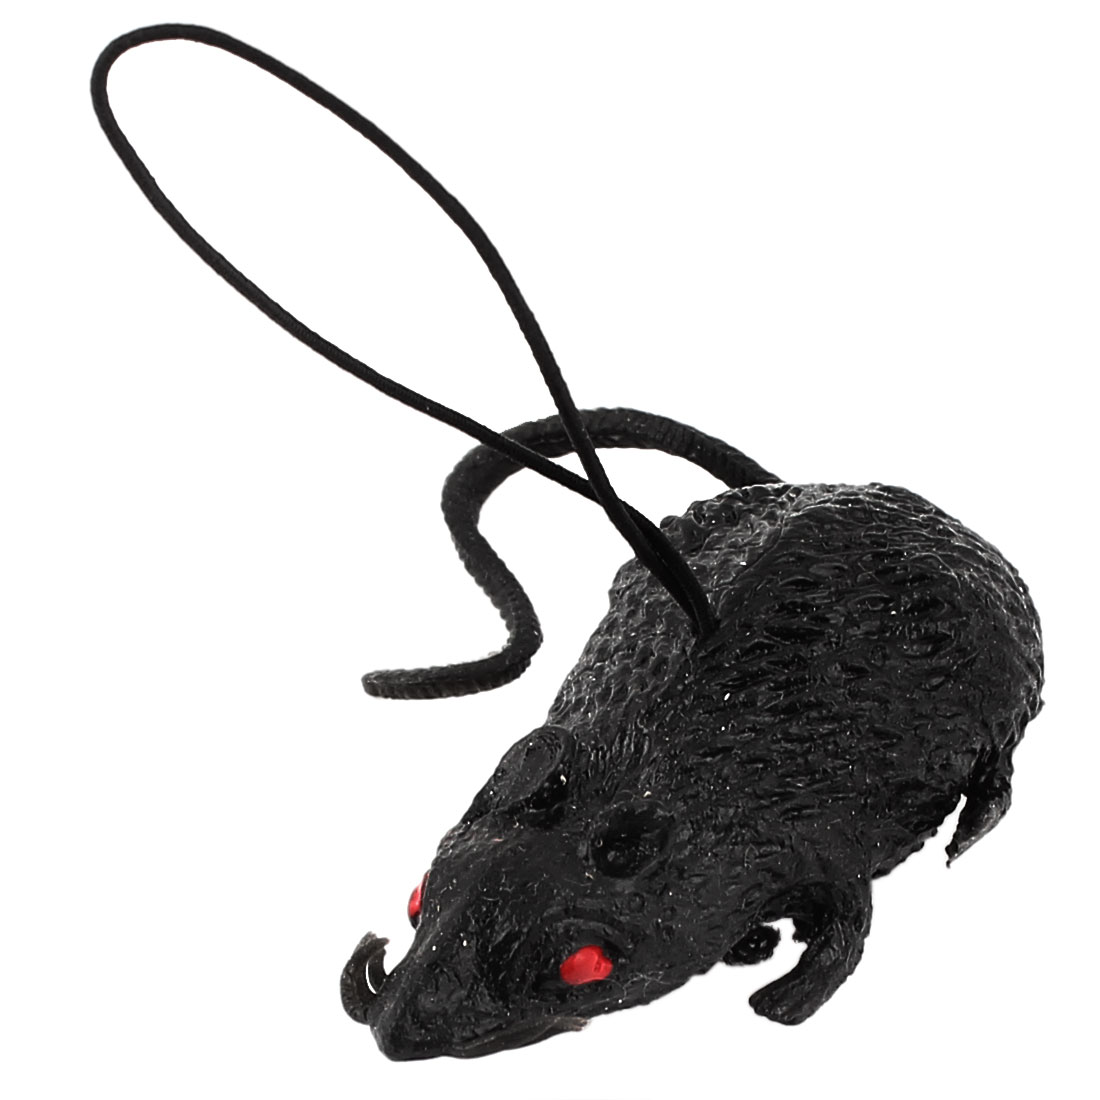 Black Rubber Artificial Mouse Pendant Cel Phone MP3 MP4 Strap String Charm Hanging Ornament